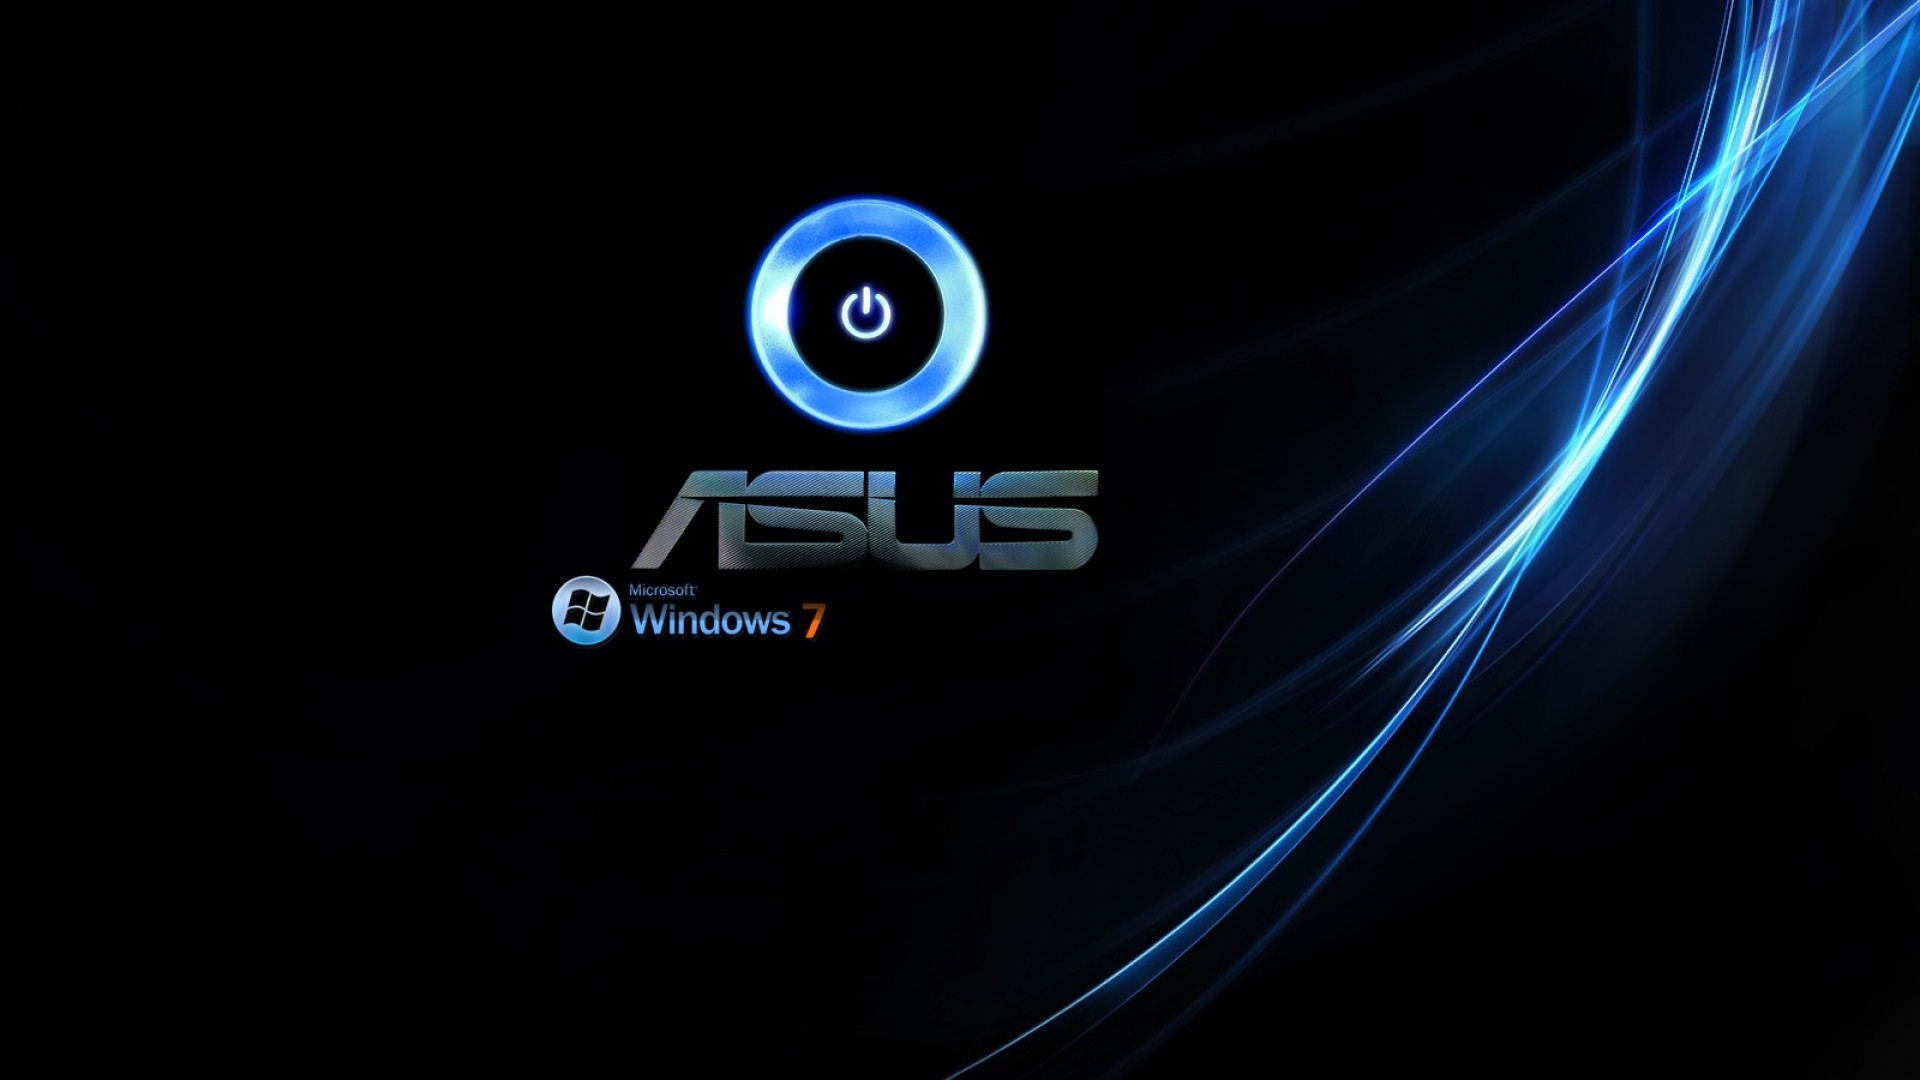 Asus Wallpaper Hd 1920x1080